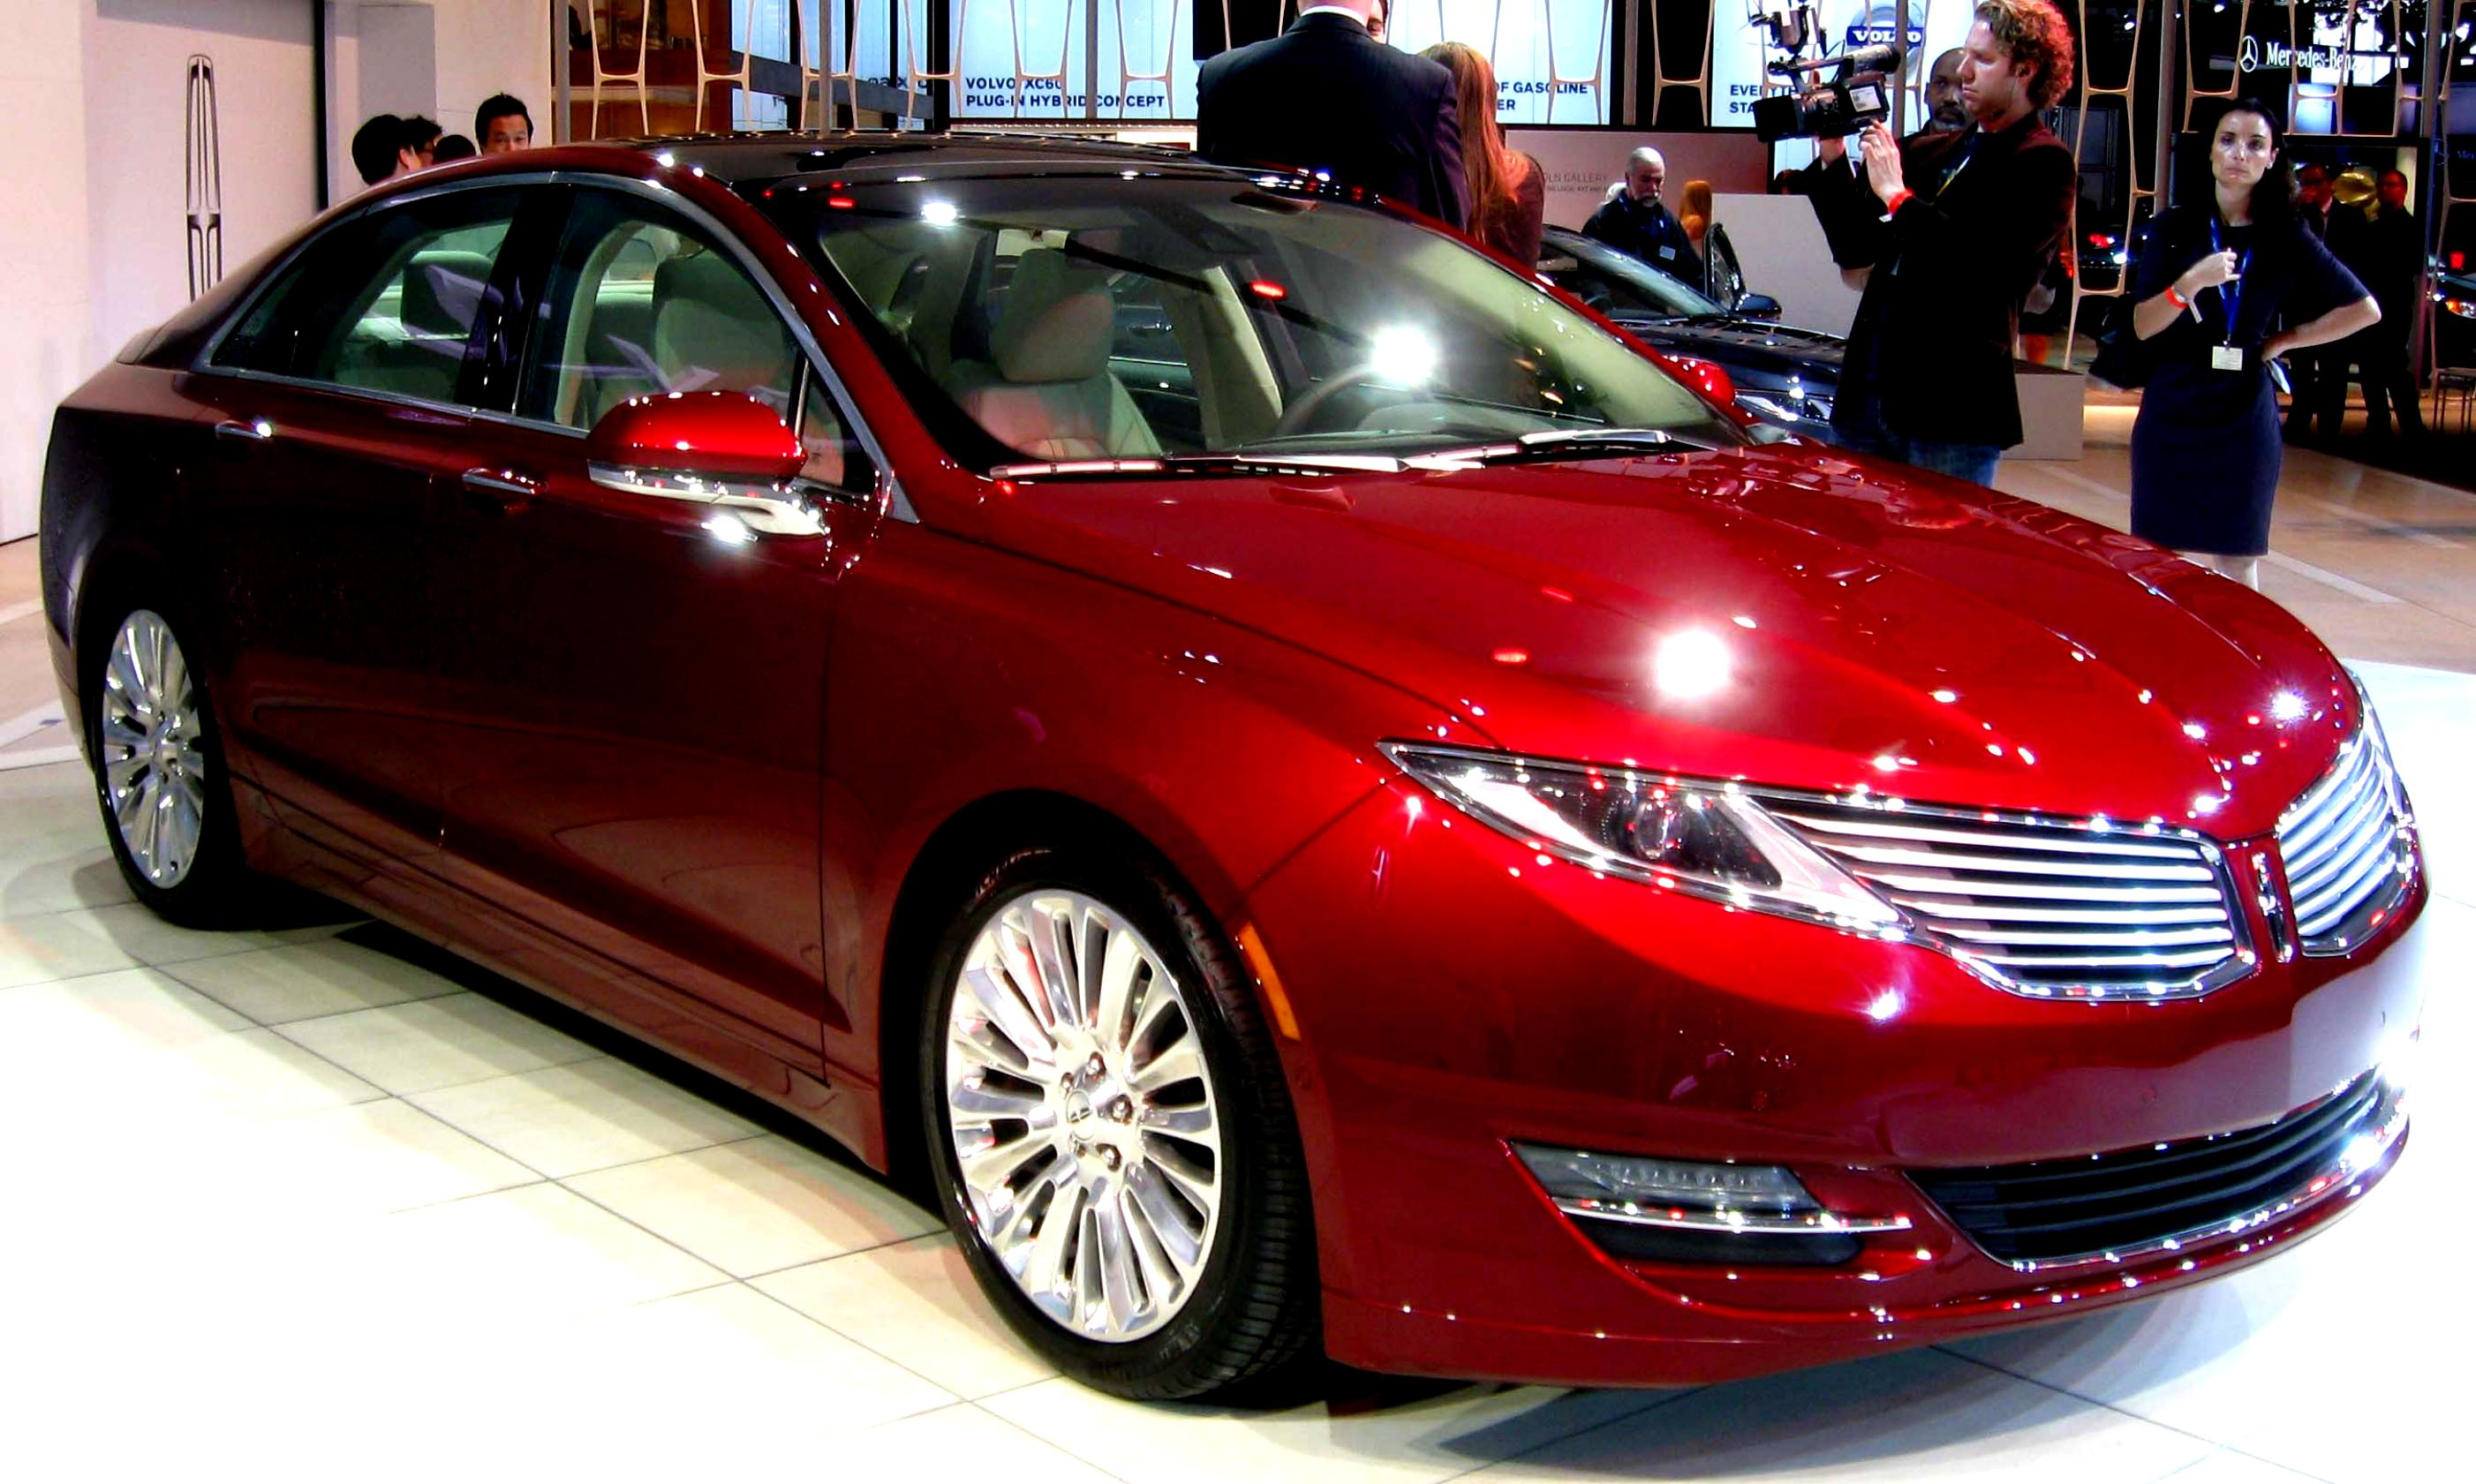 Lincoln MKZ 2006 #45